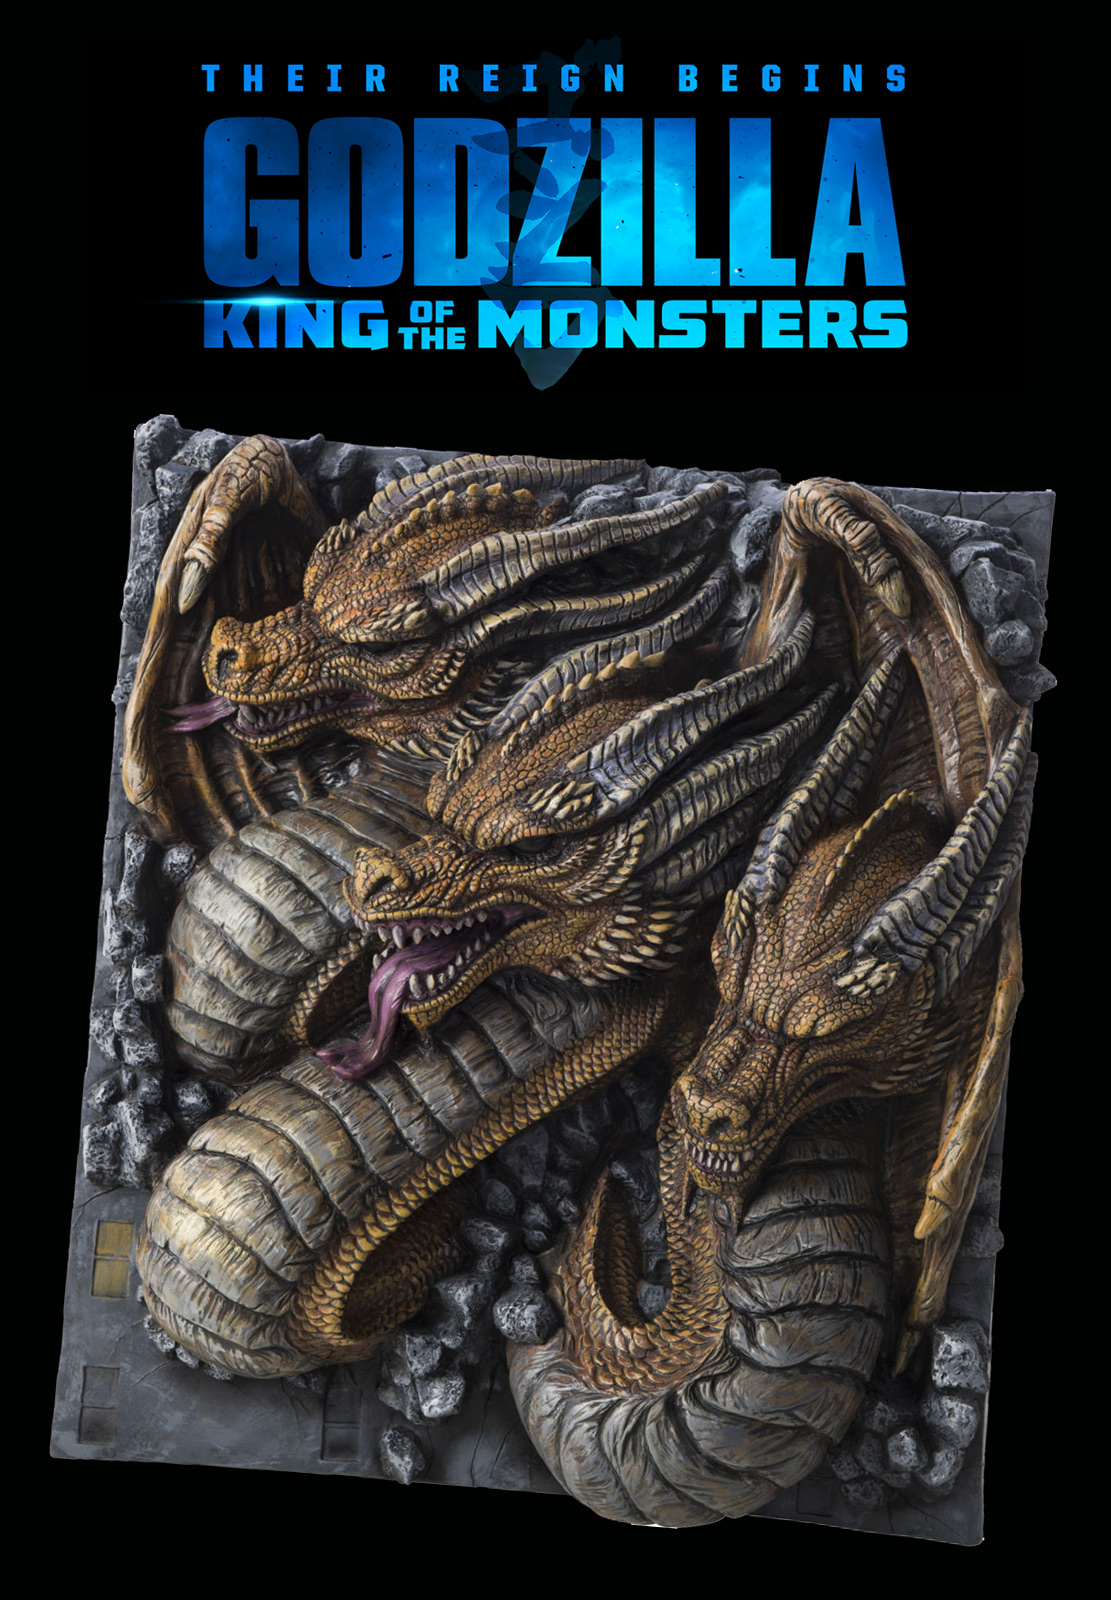 Godzilla 2019 King of the Monsters King Ghidorah Wall Breaker Giant 3D Display